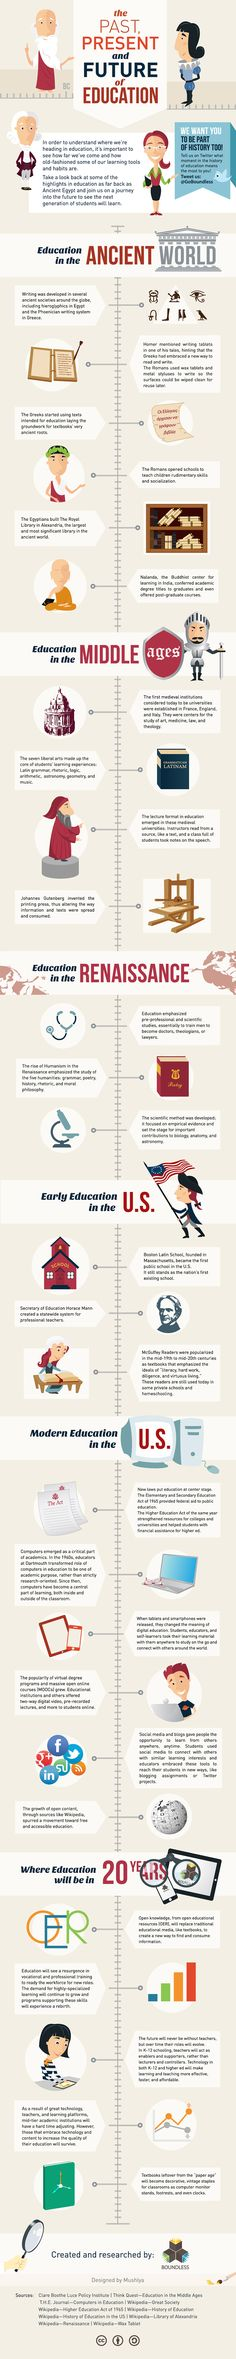 The Past, Present, and Future of Education Infographic